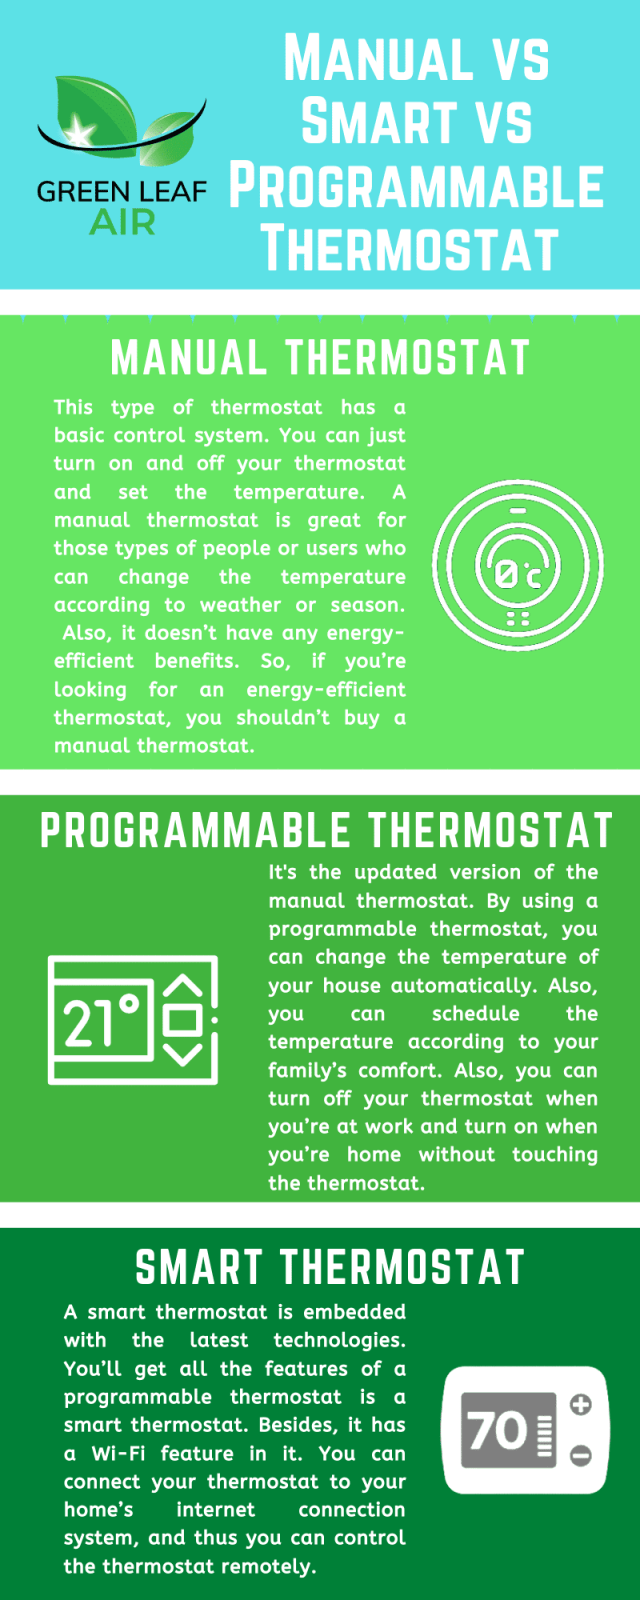 Manual vs Smart vs Programmable Thermostat